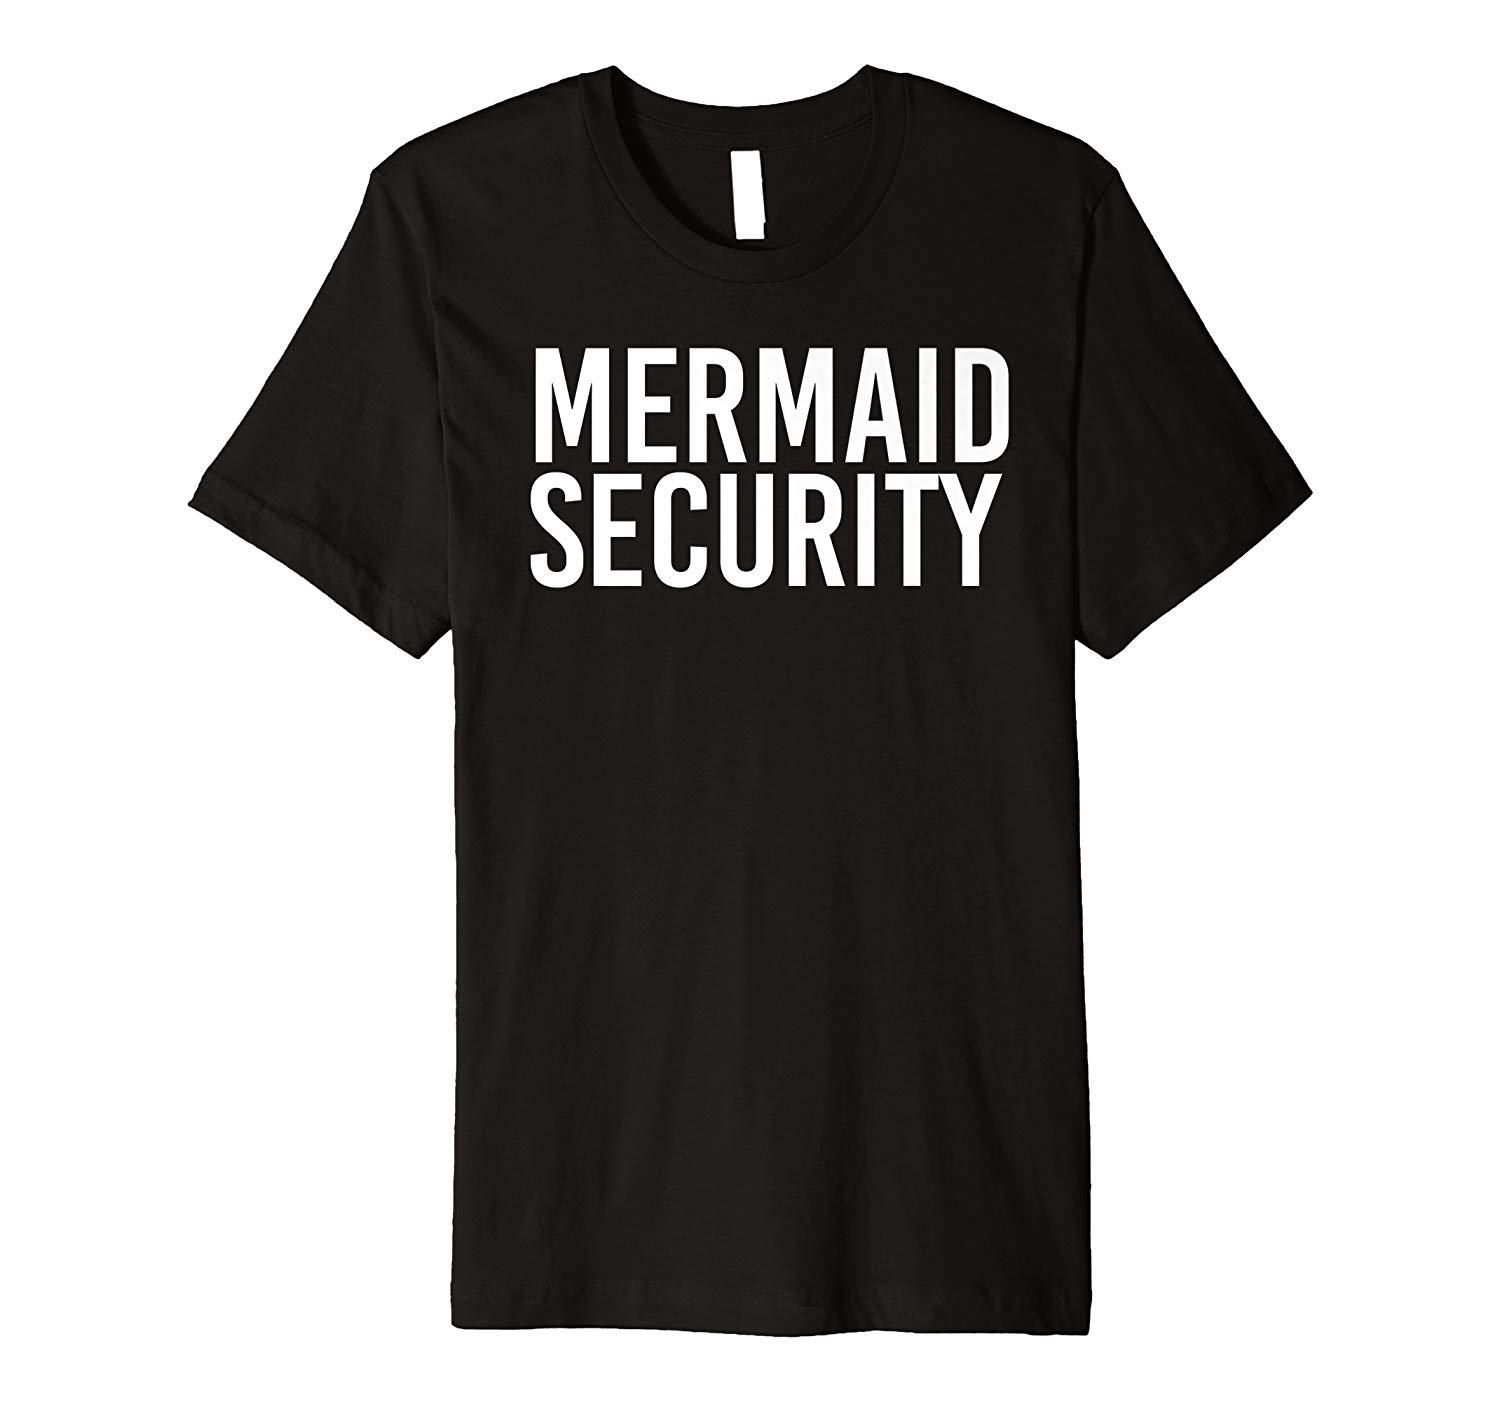 Mermaid Security Shirt Funny Beach Swimming Party Gift Idea